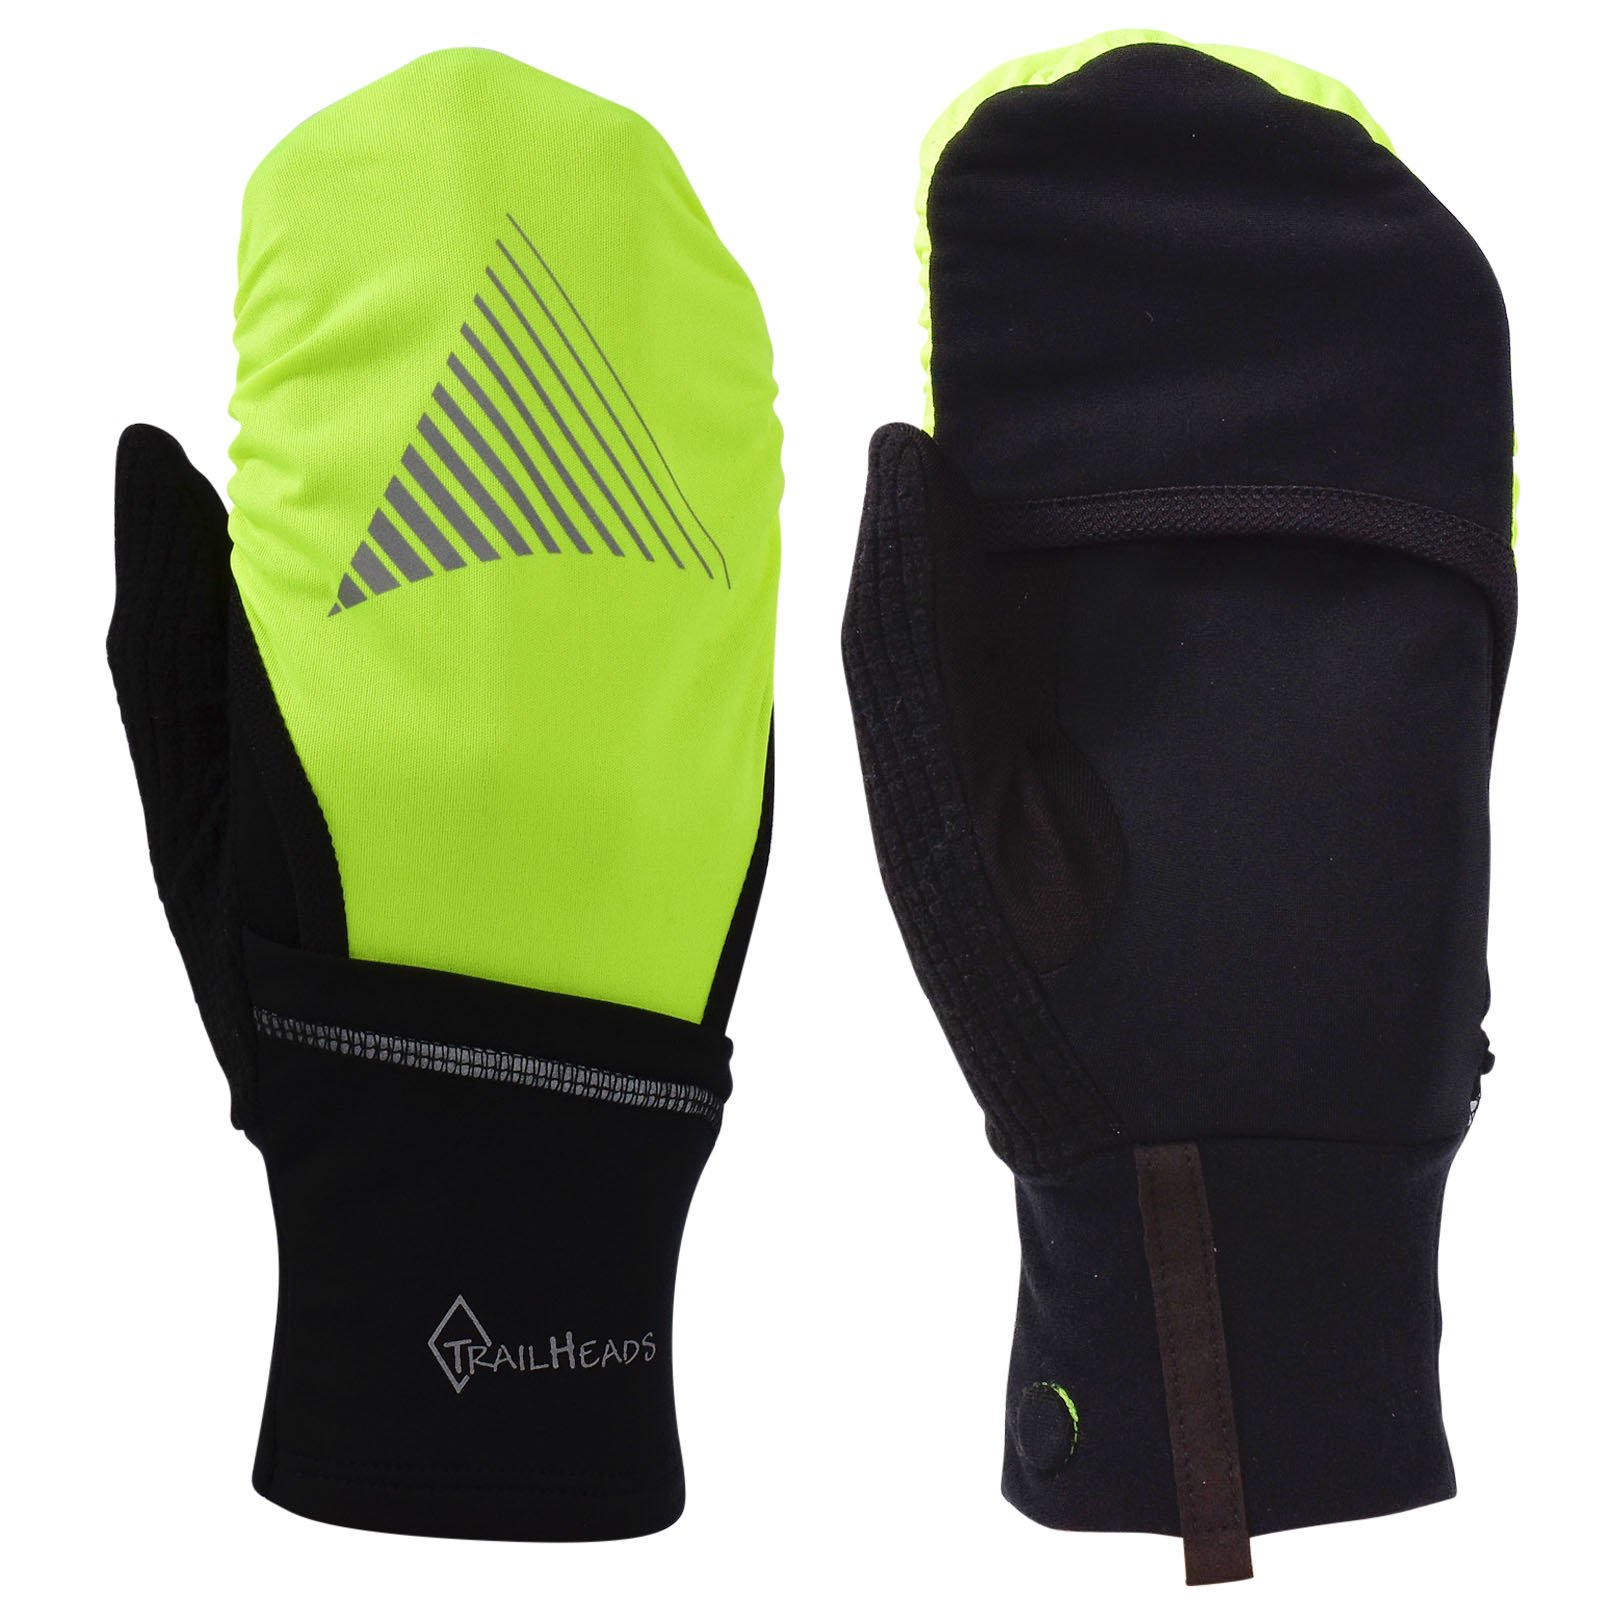 TrailHeads Convertible Running Gloves - black/hi-vis (small/medium) by TrailHeads (Image #1)